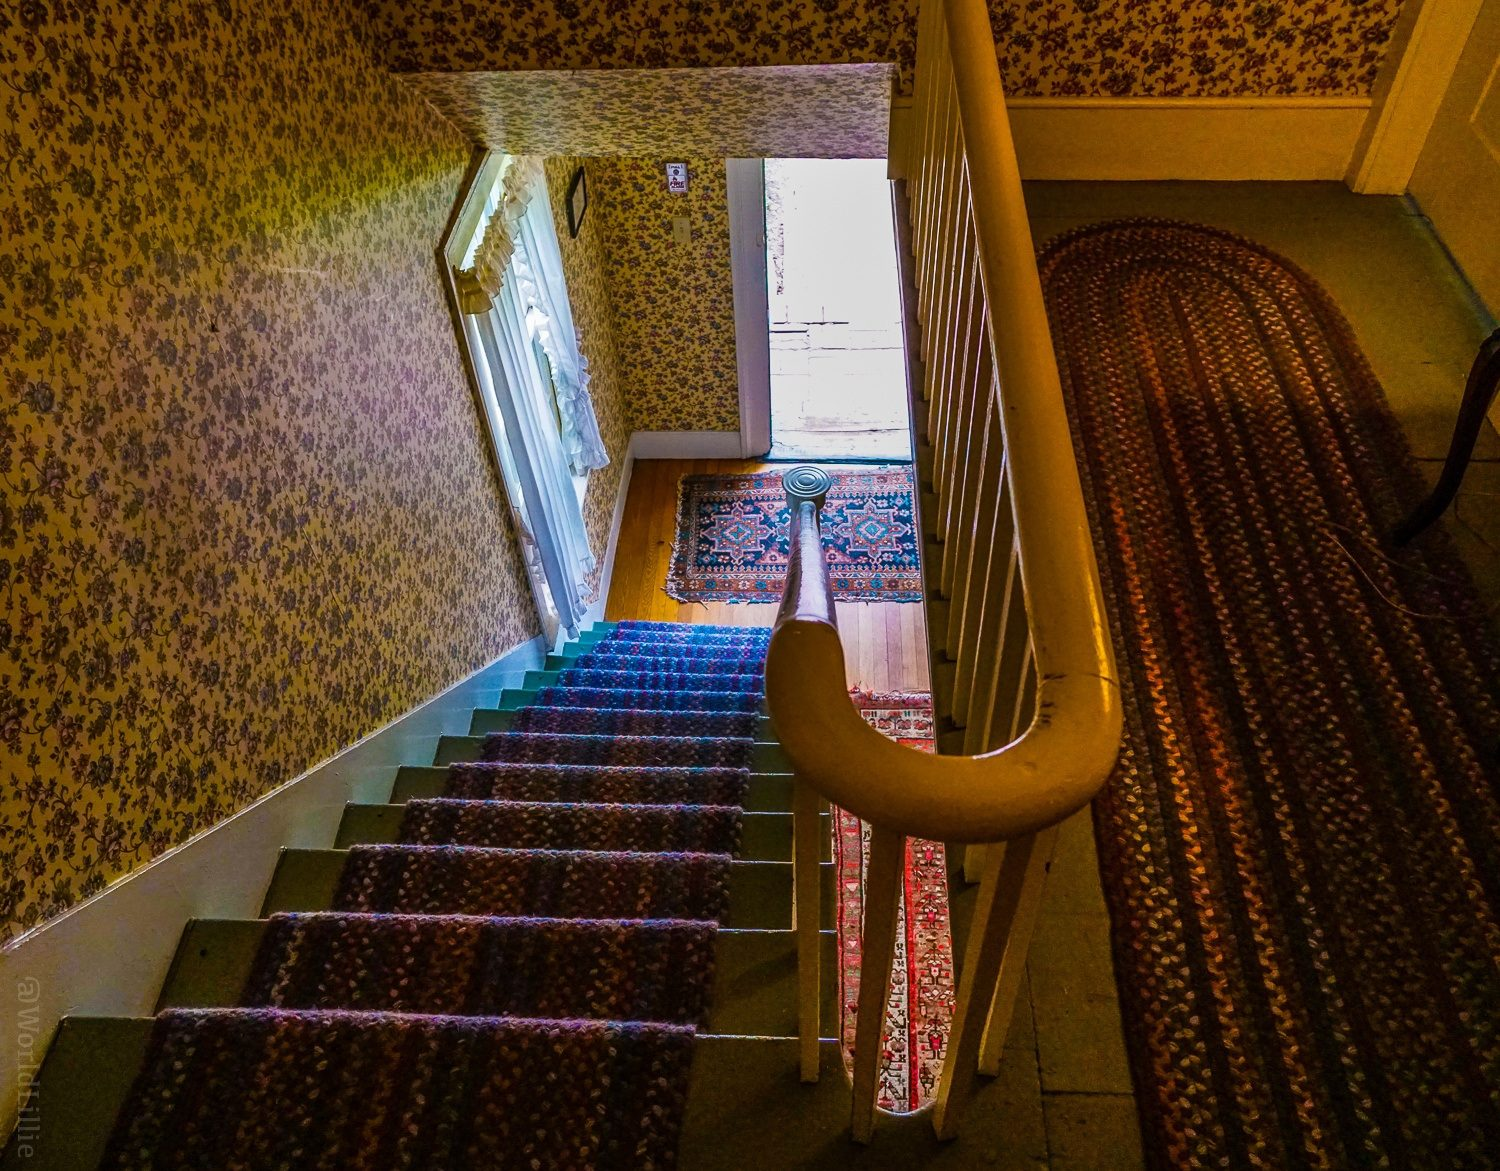 Staircases and historic hotel carpets and wallpaper at the Red Lion Inn